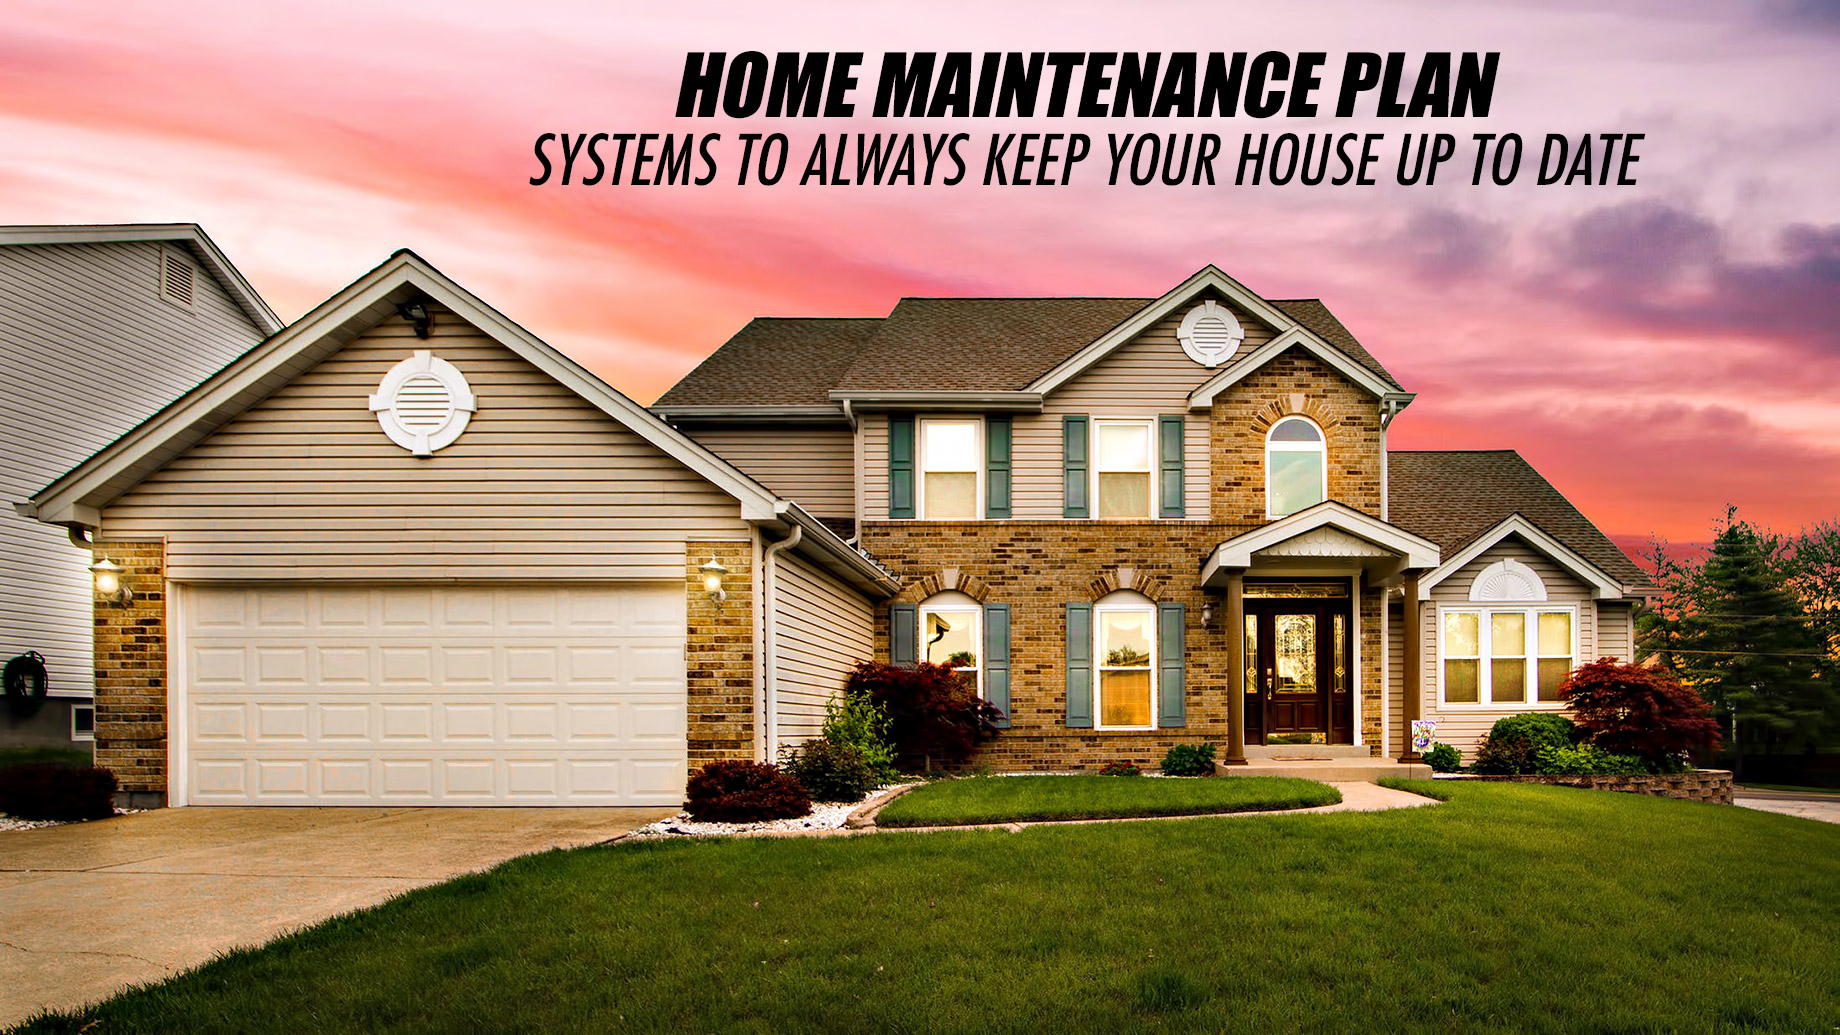 Home Maintenance Plan - Systems to Always Keep Your House Up to Date